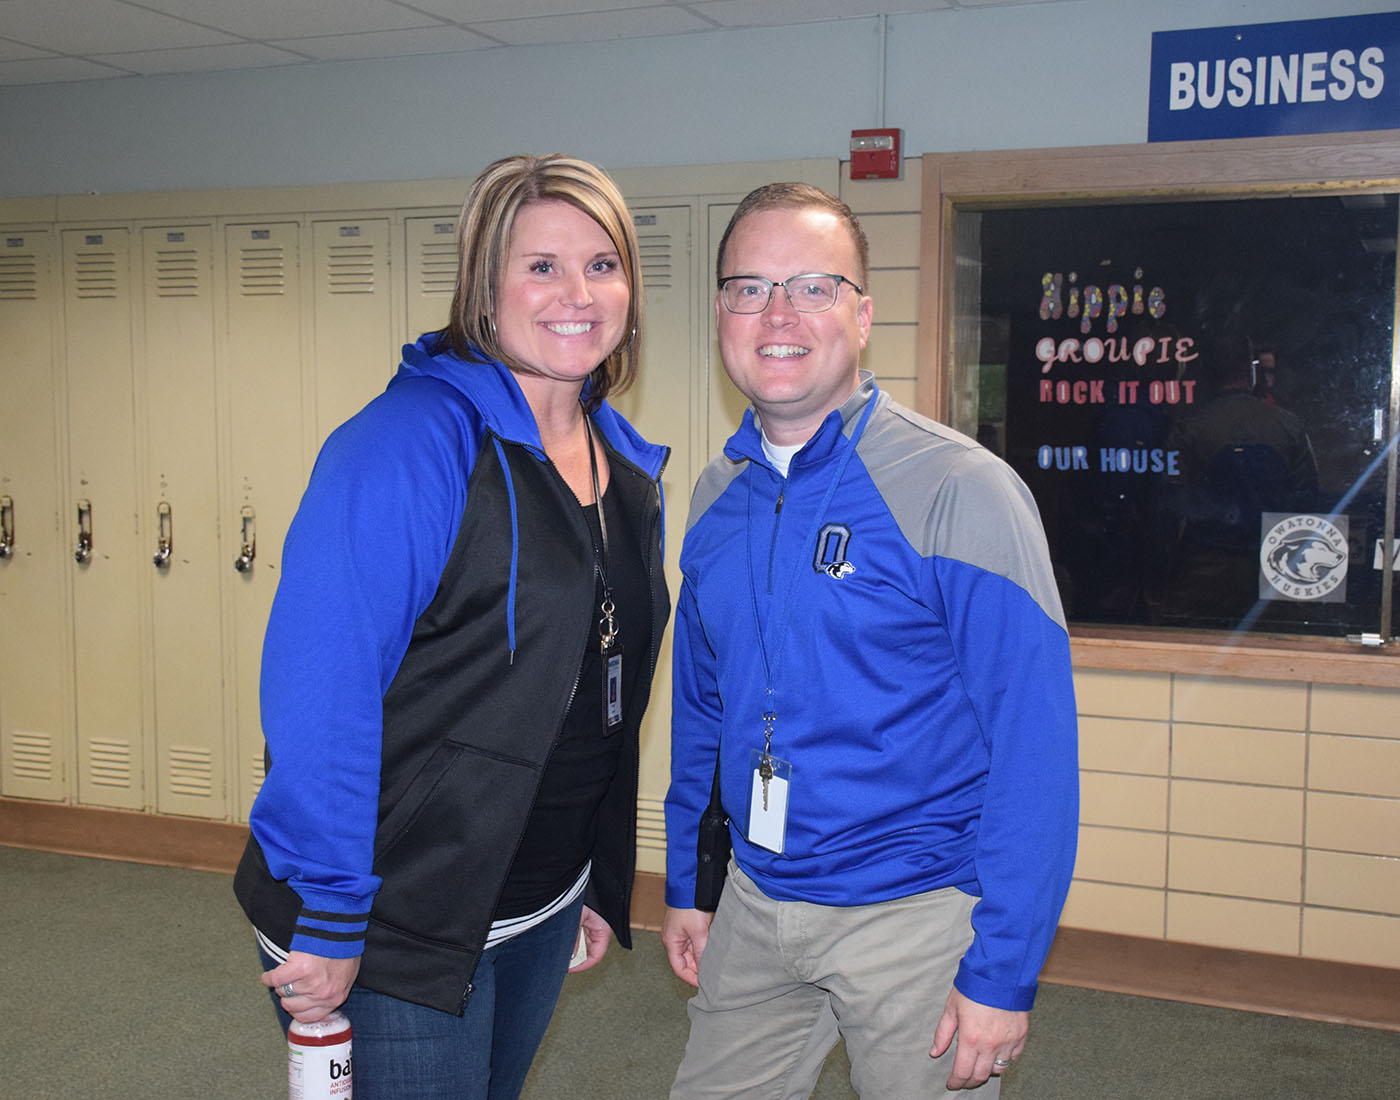 Mr, Kath poses with Ms. Jeska in the hallway